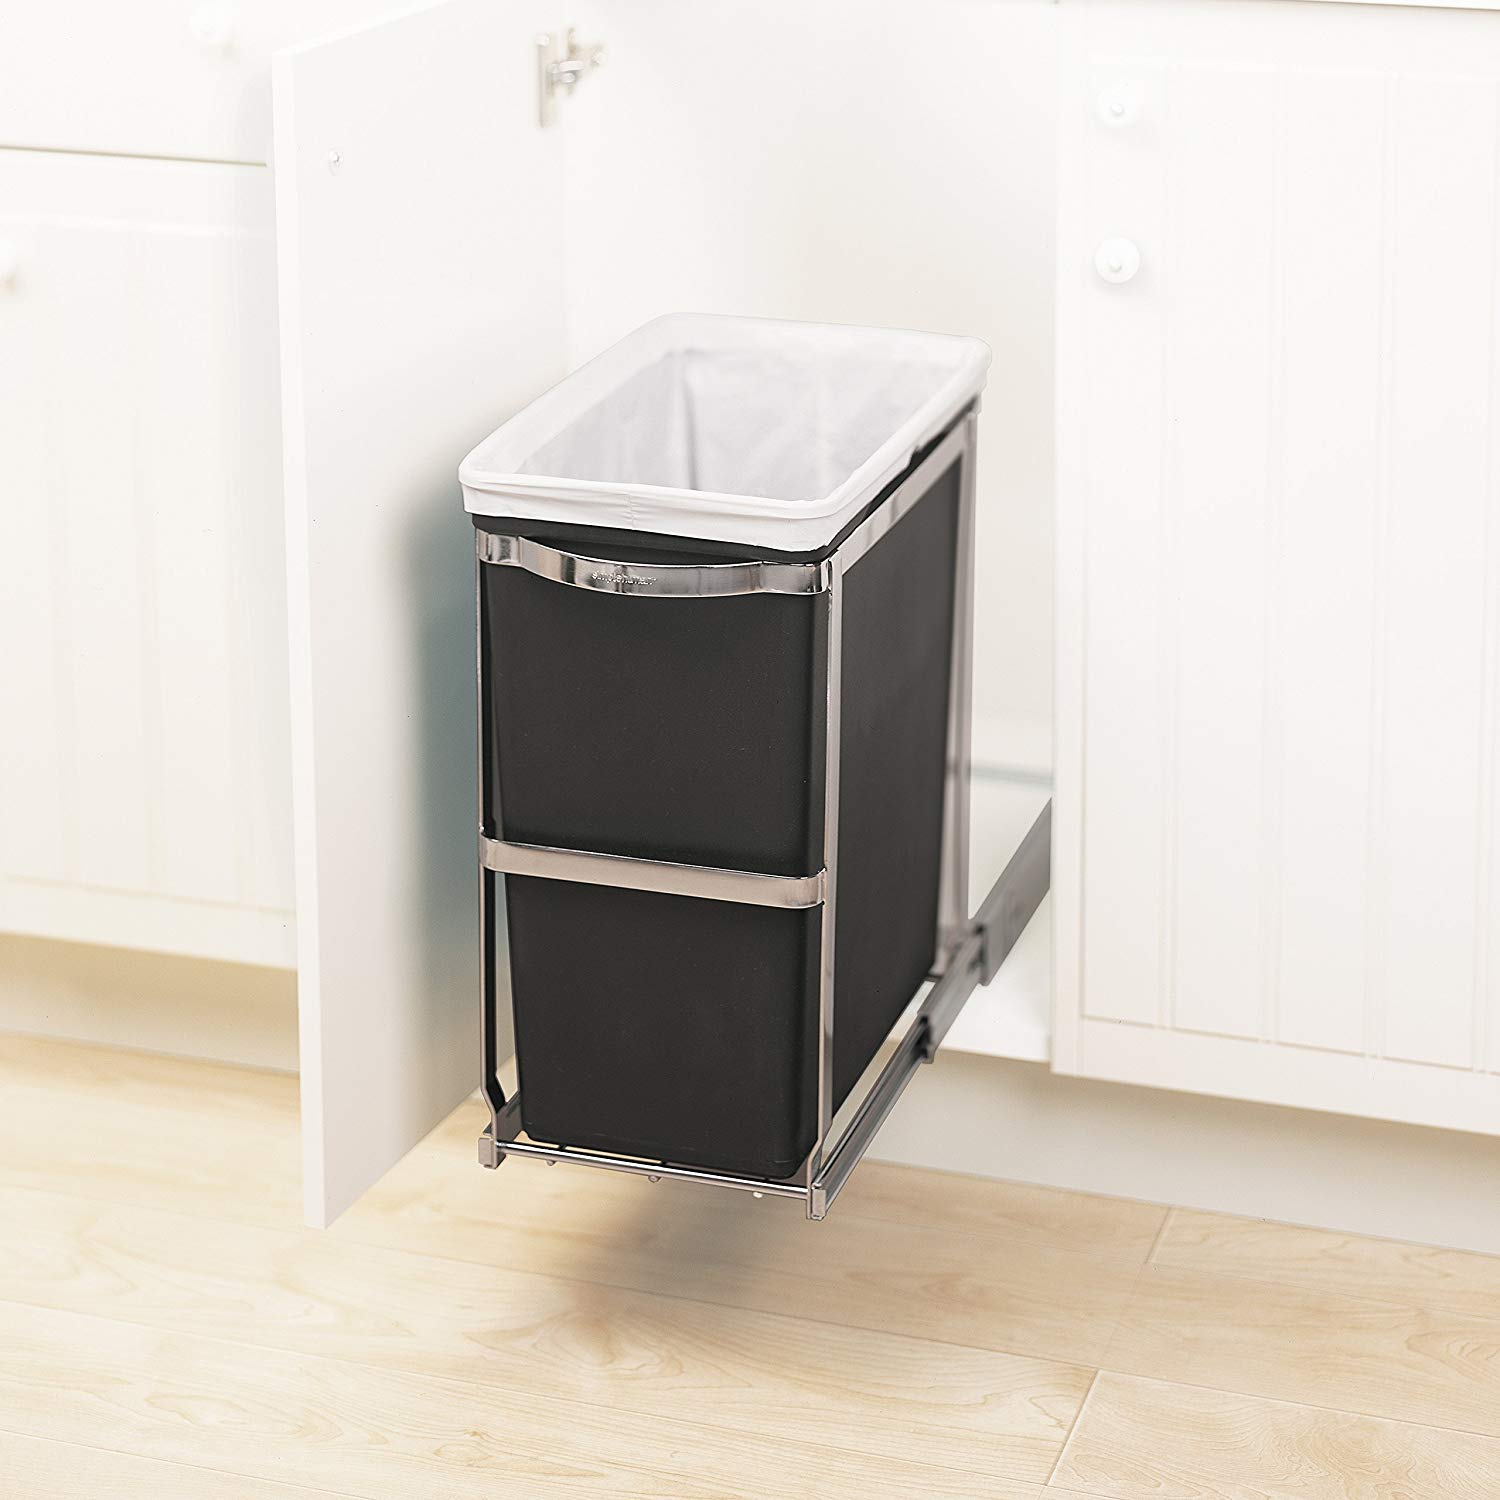 Kitchen Organization DIYs, Pull-Out Garbage Can